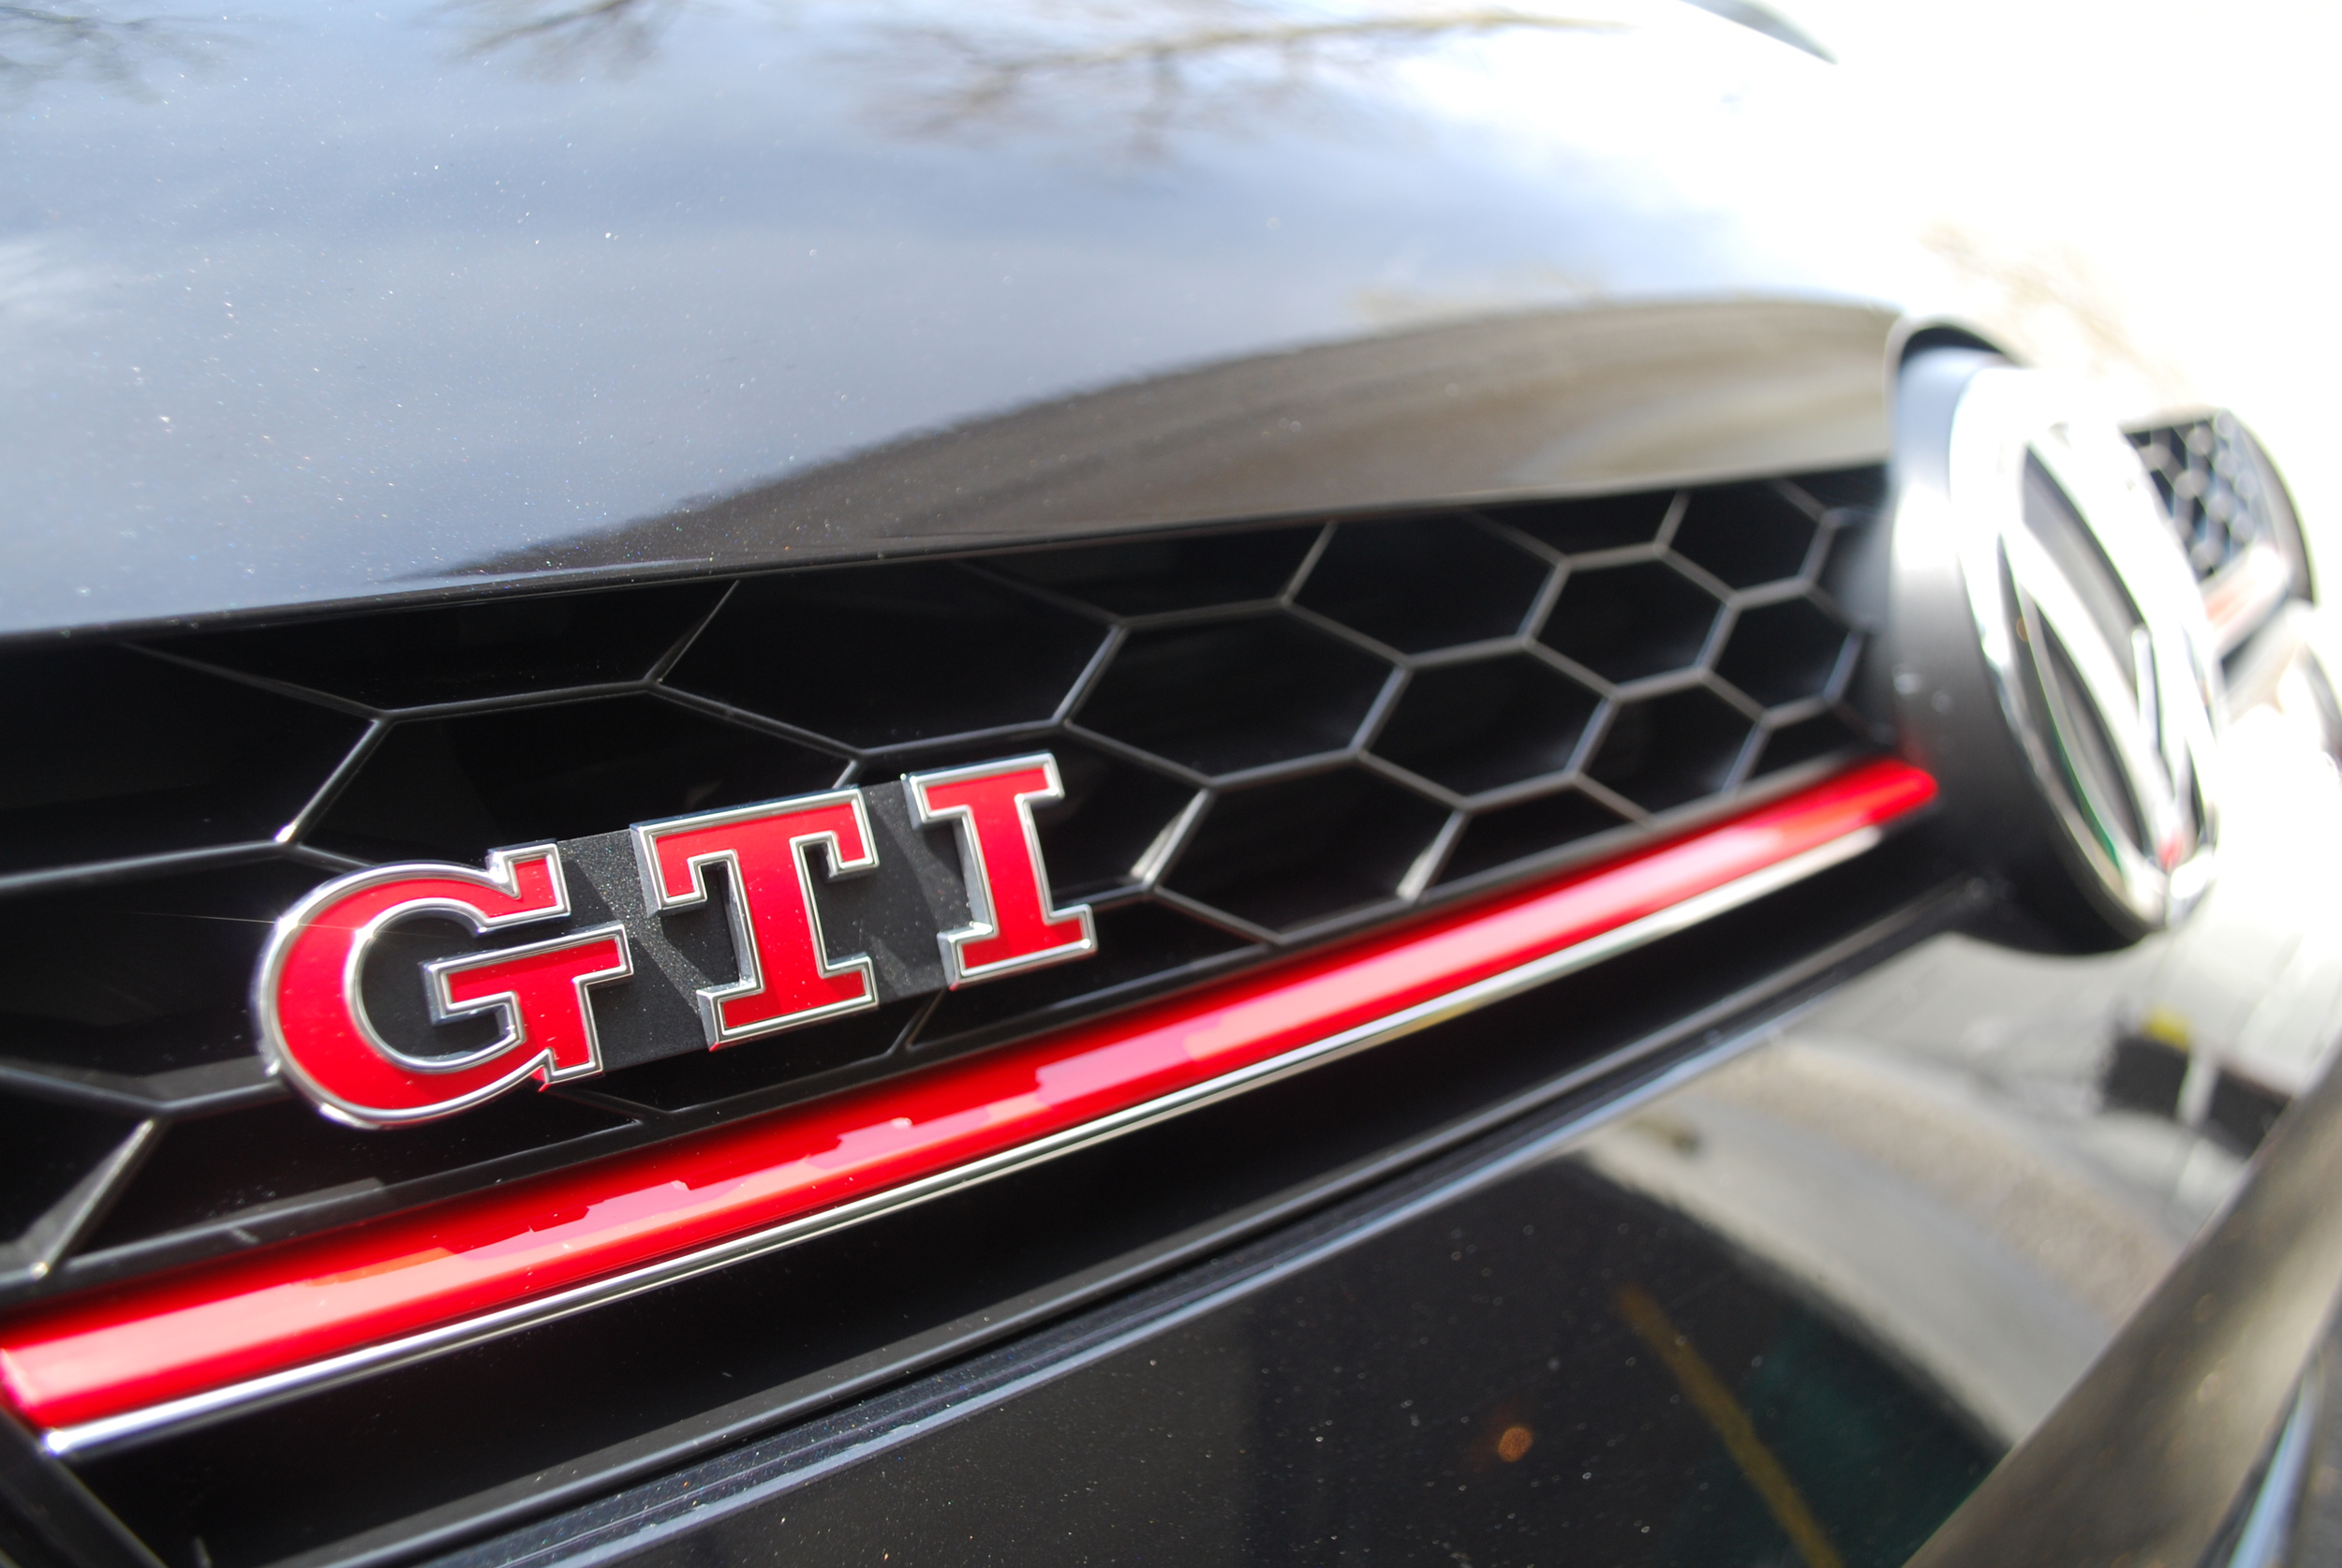 2015 volkswagen gti swirl removal & cquartz uk application